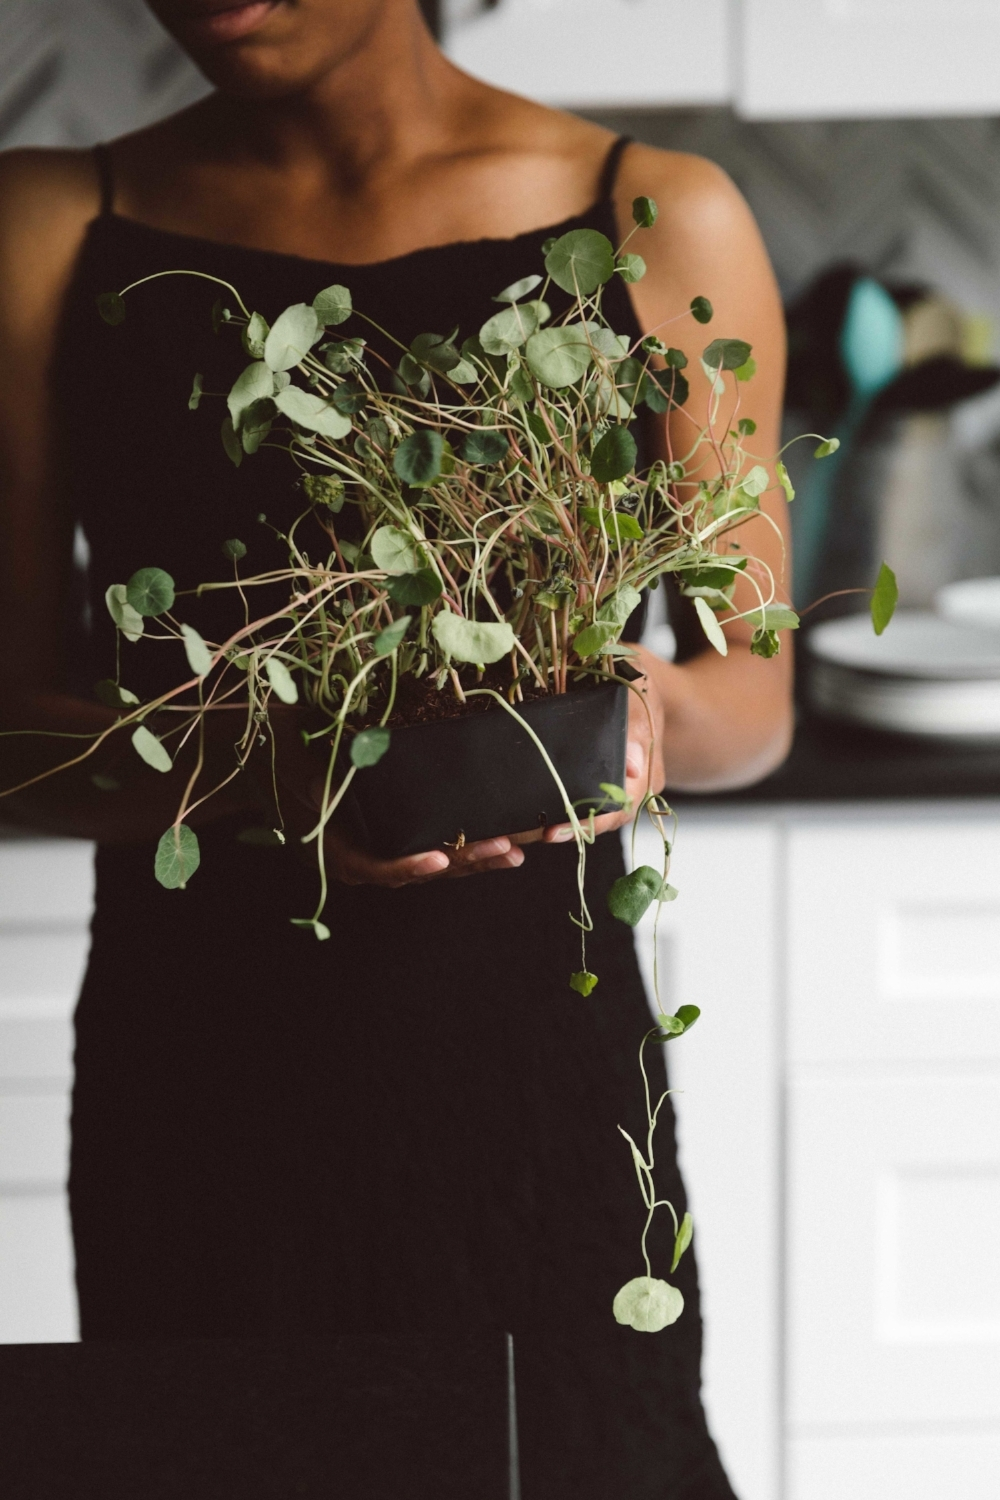 Jimena-Peck-Denver-Lifestyle-Editorial-Photographer-Thistle-And-Mint-Grabbing-Sprouts